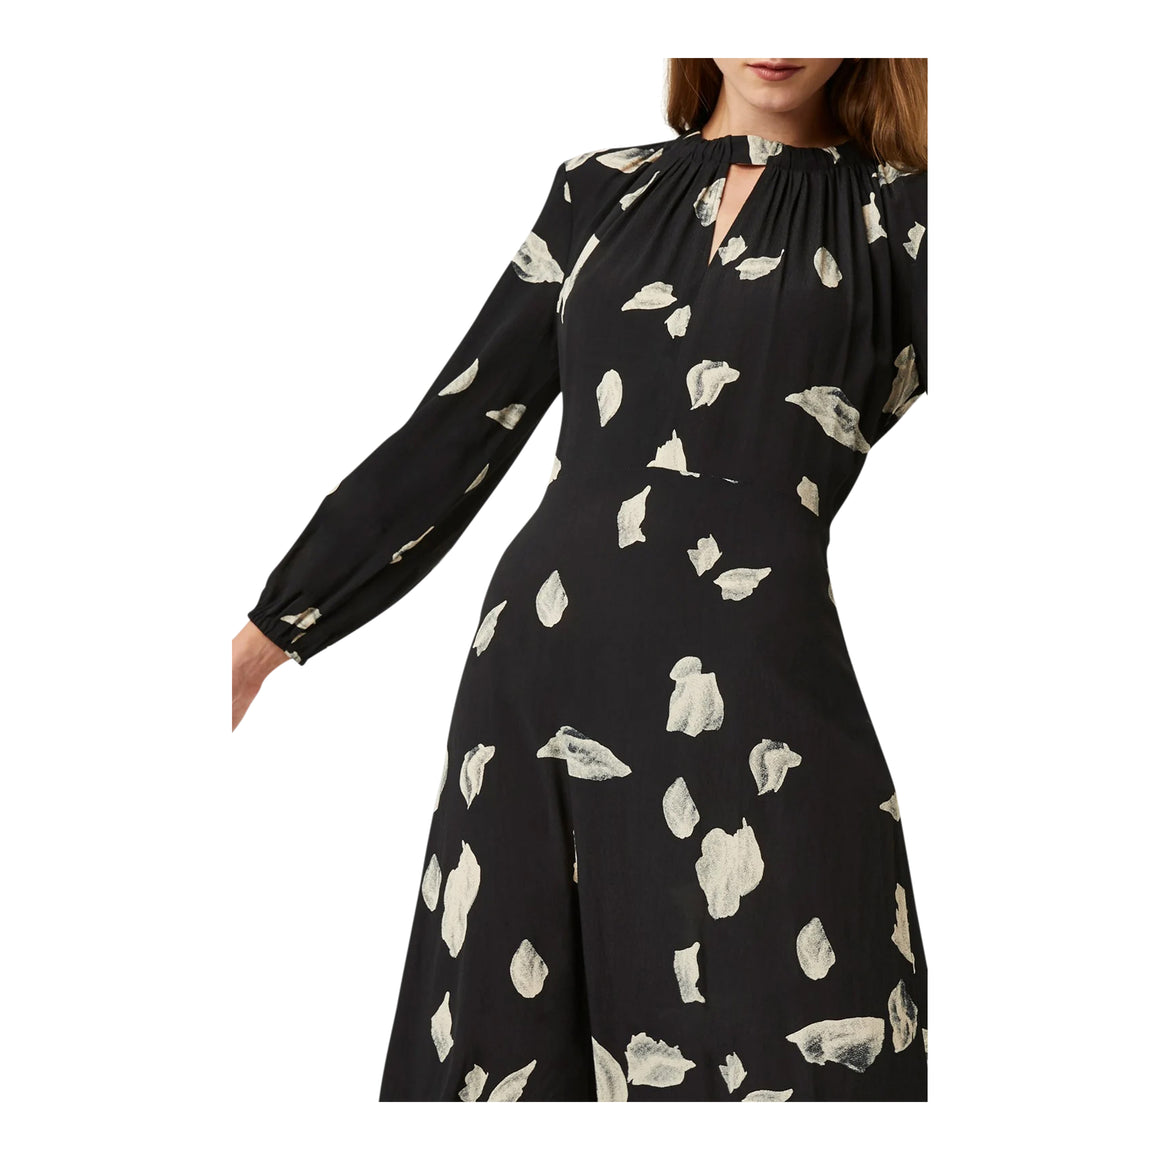 Leaf Print Dress for Women in Black Combo